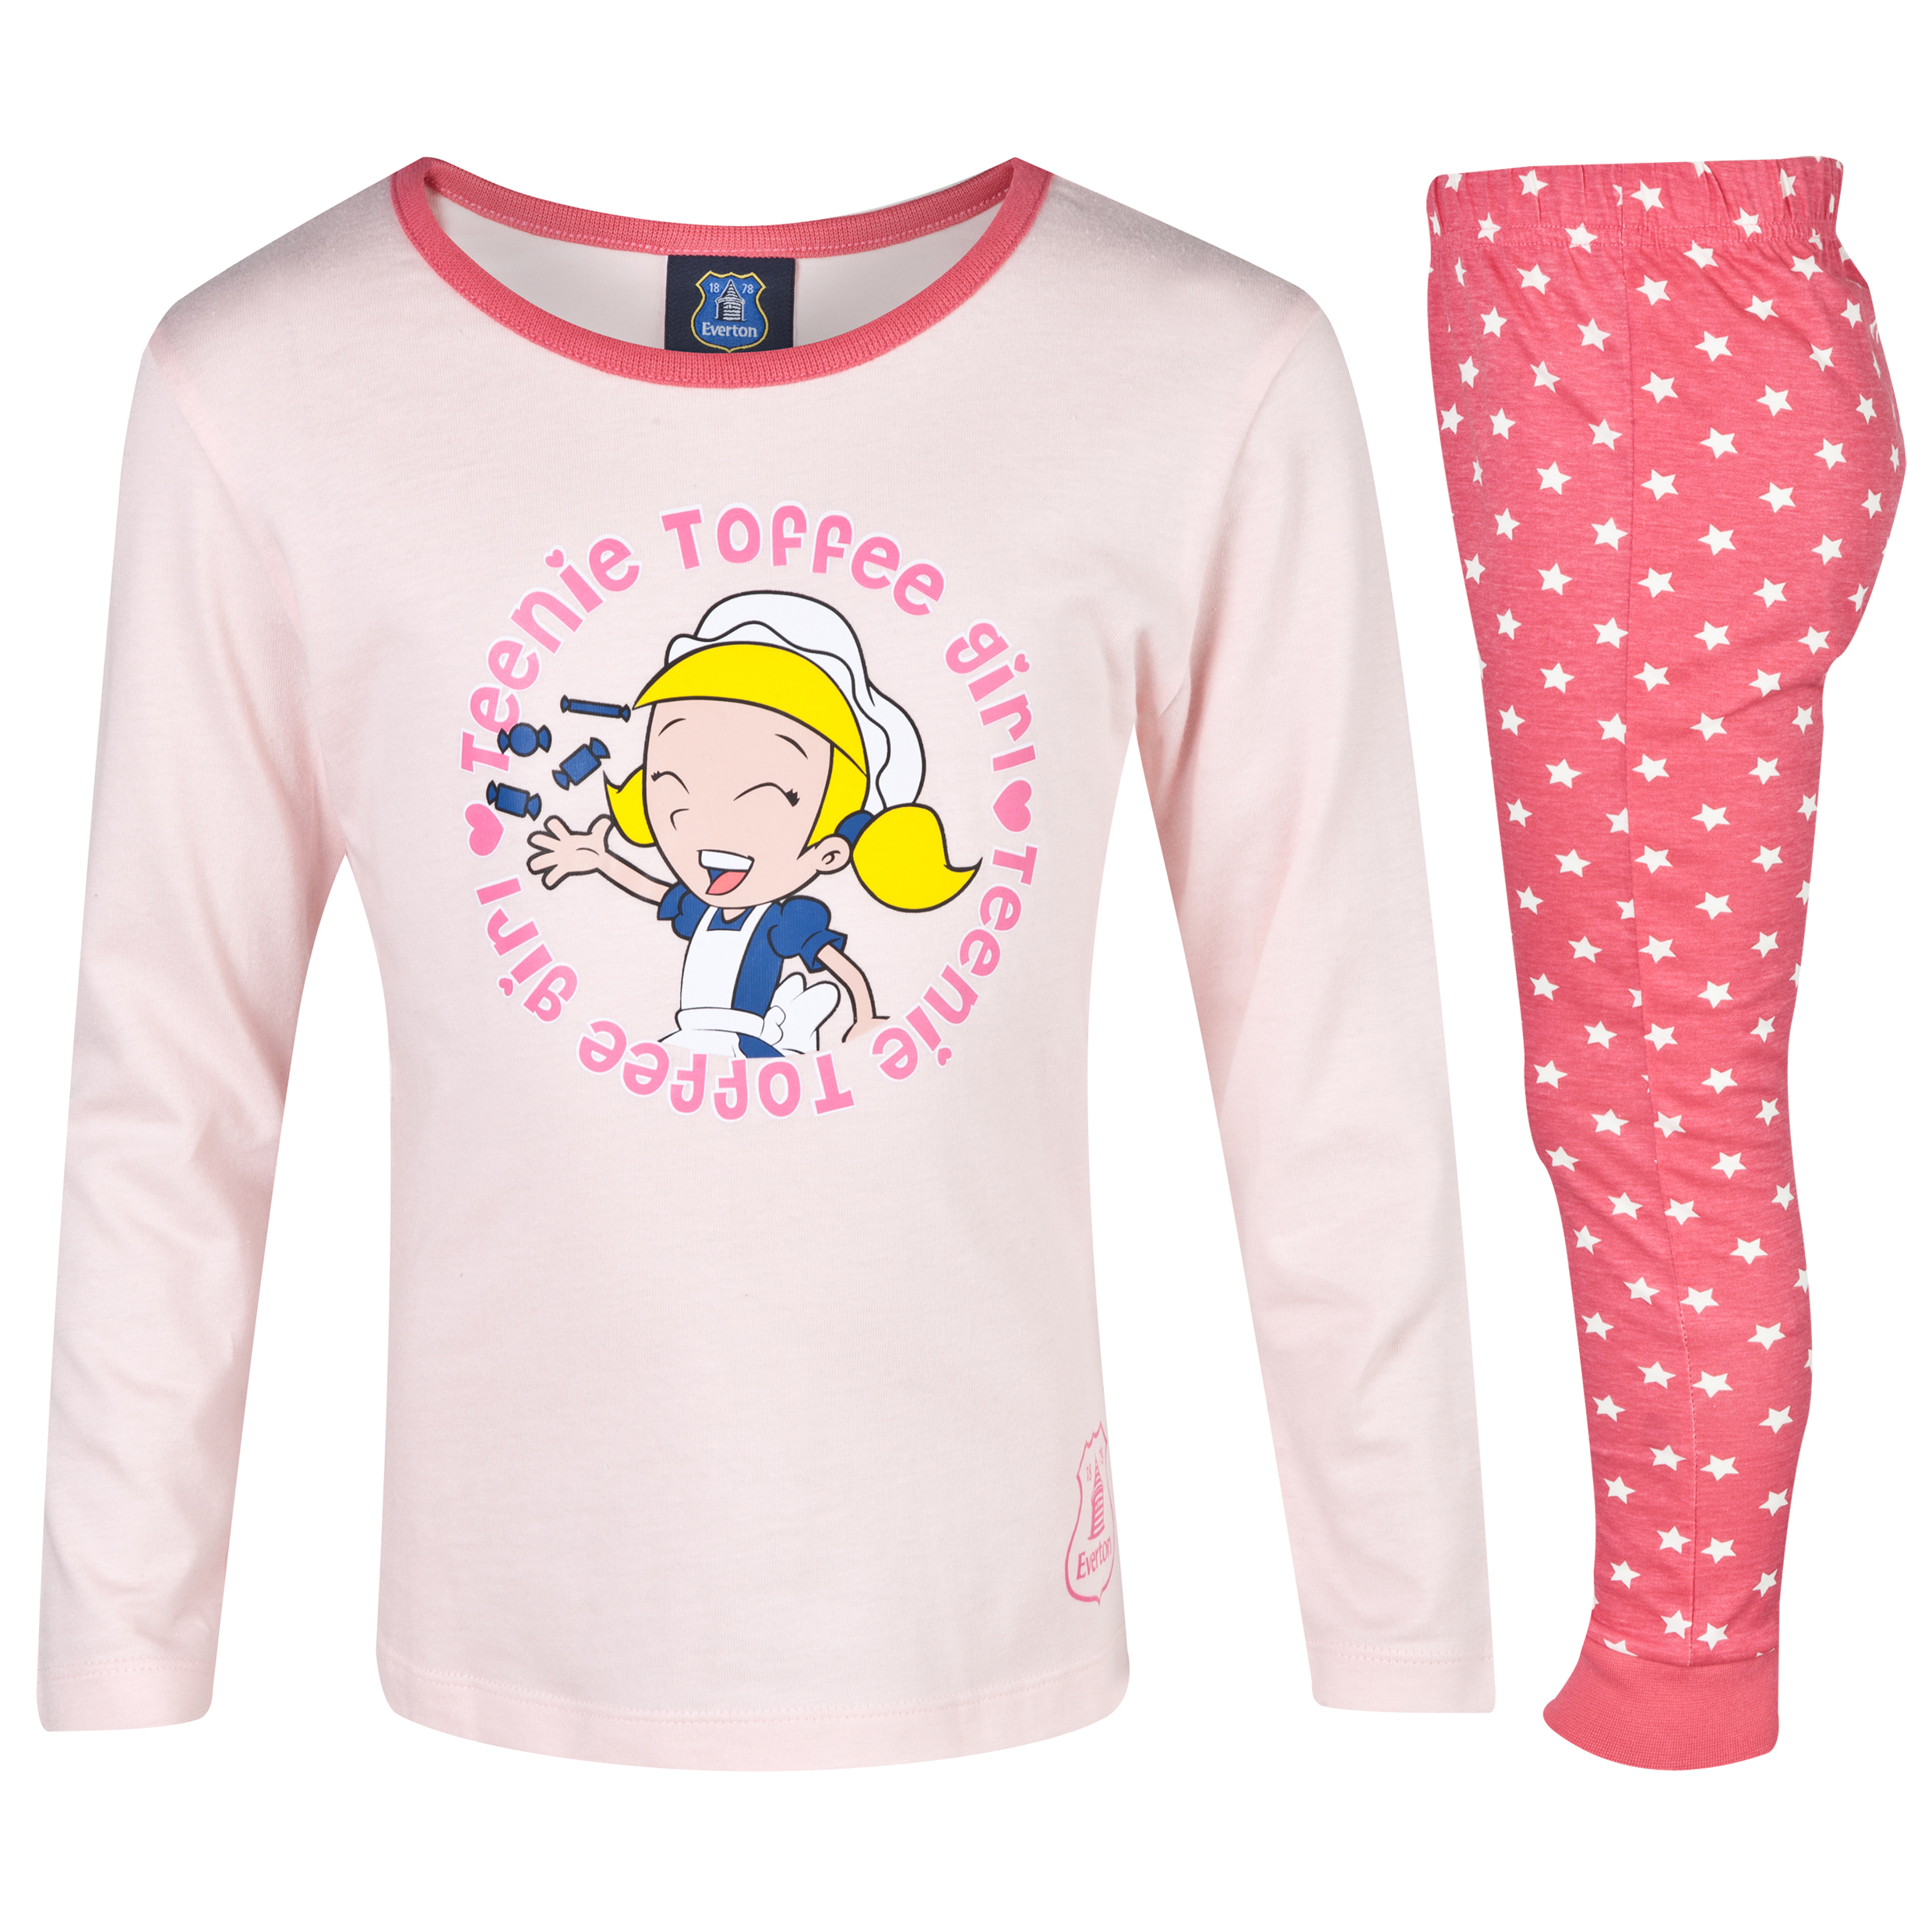 Everton Toffee Girl Pyjamas Infant Girls Pink